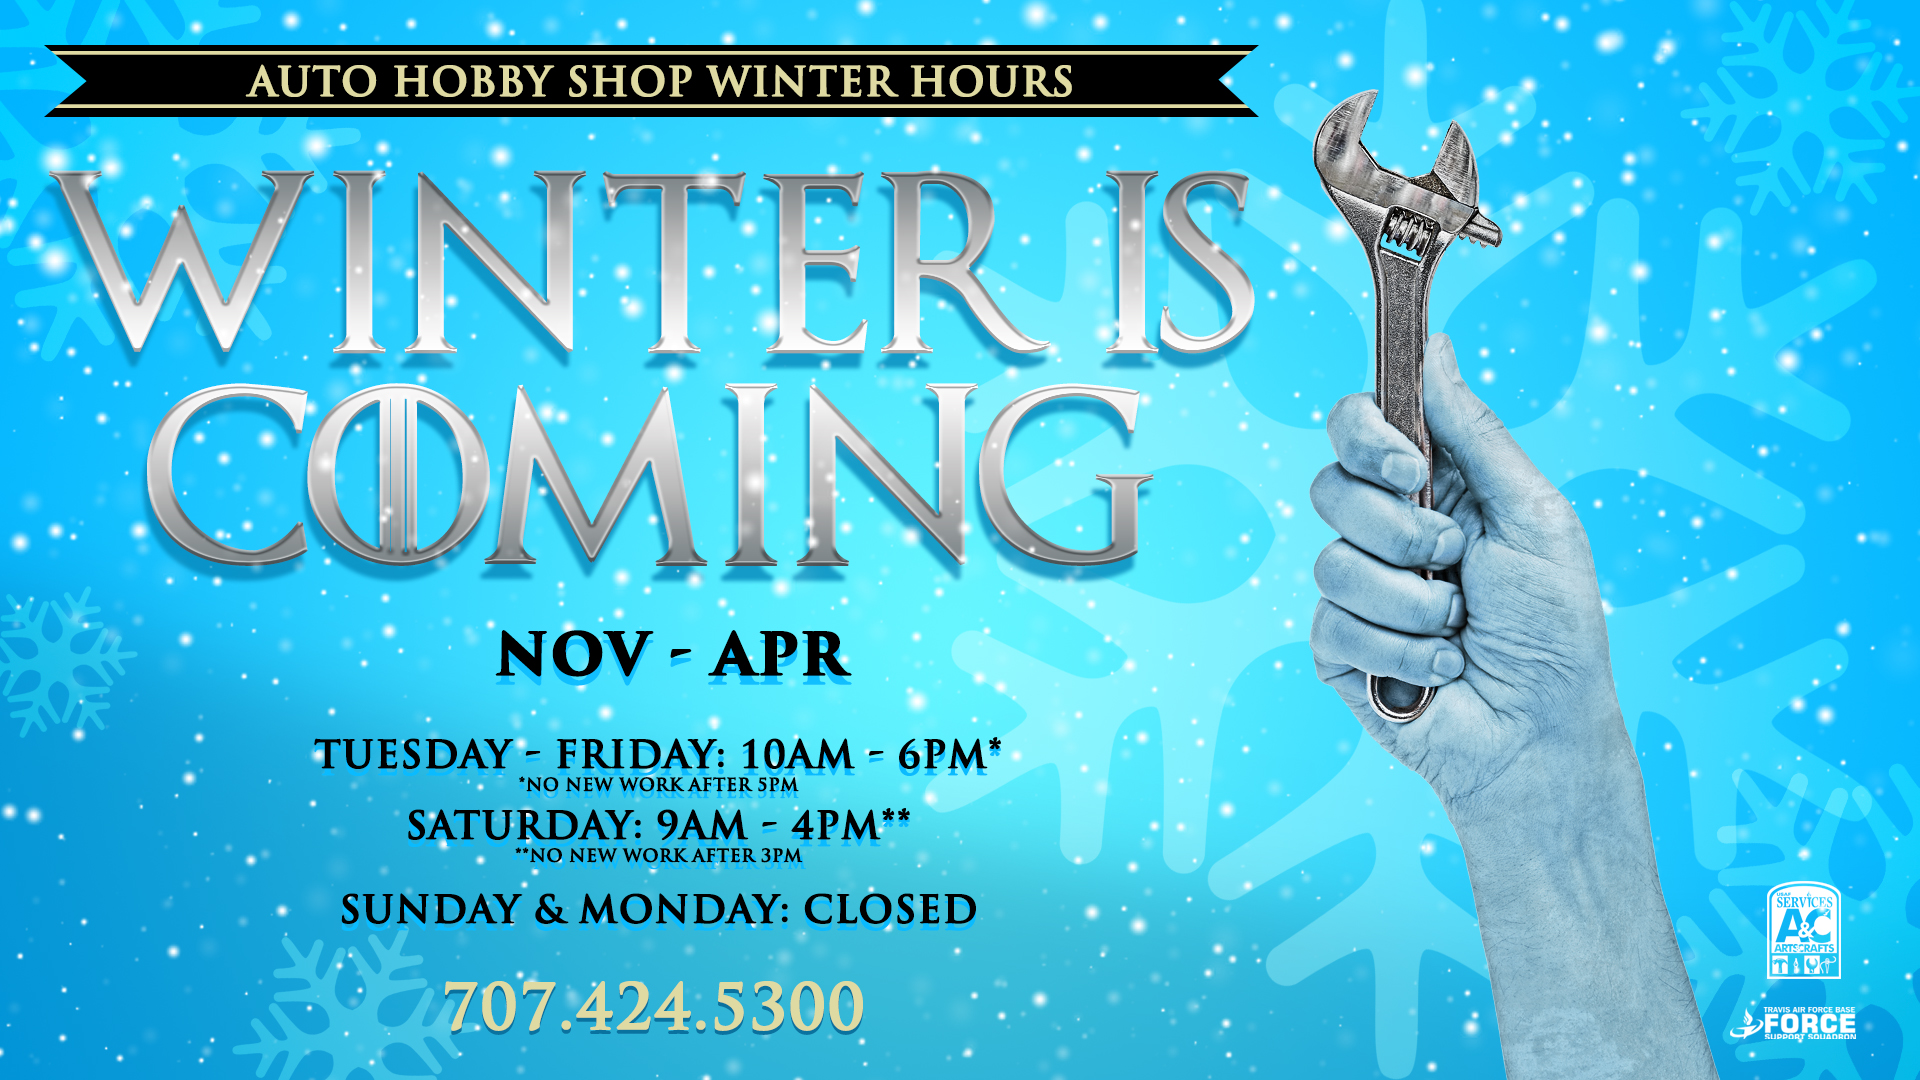 Winter Hours At The Auto Hobby Shop